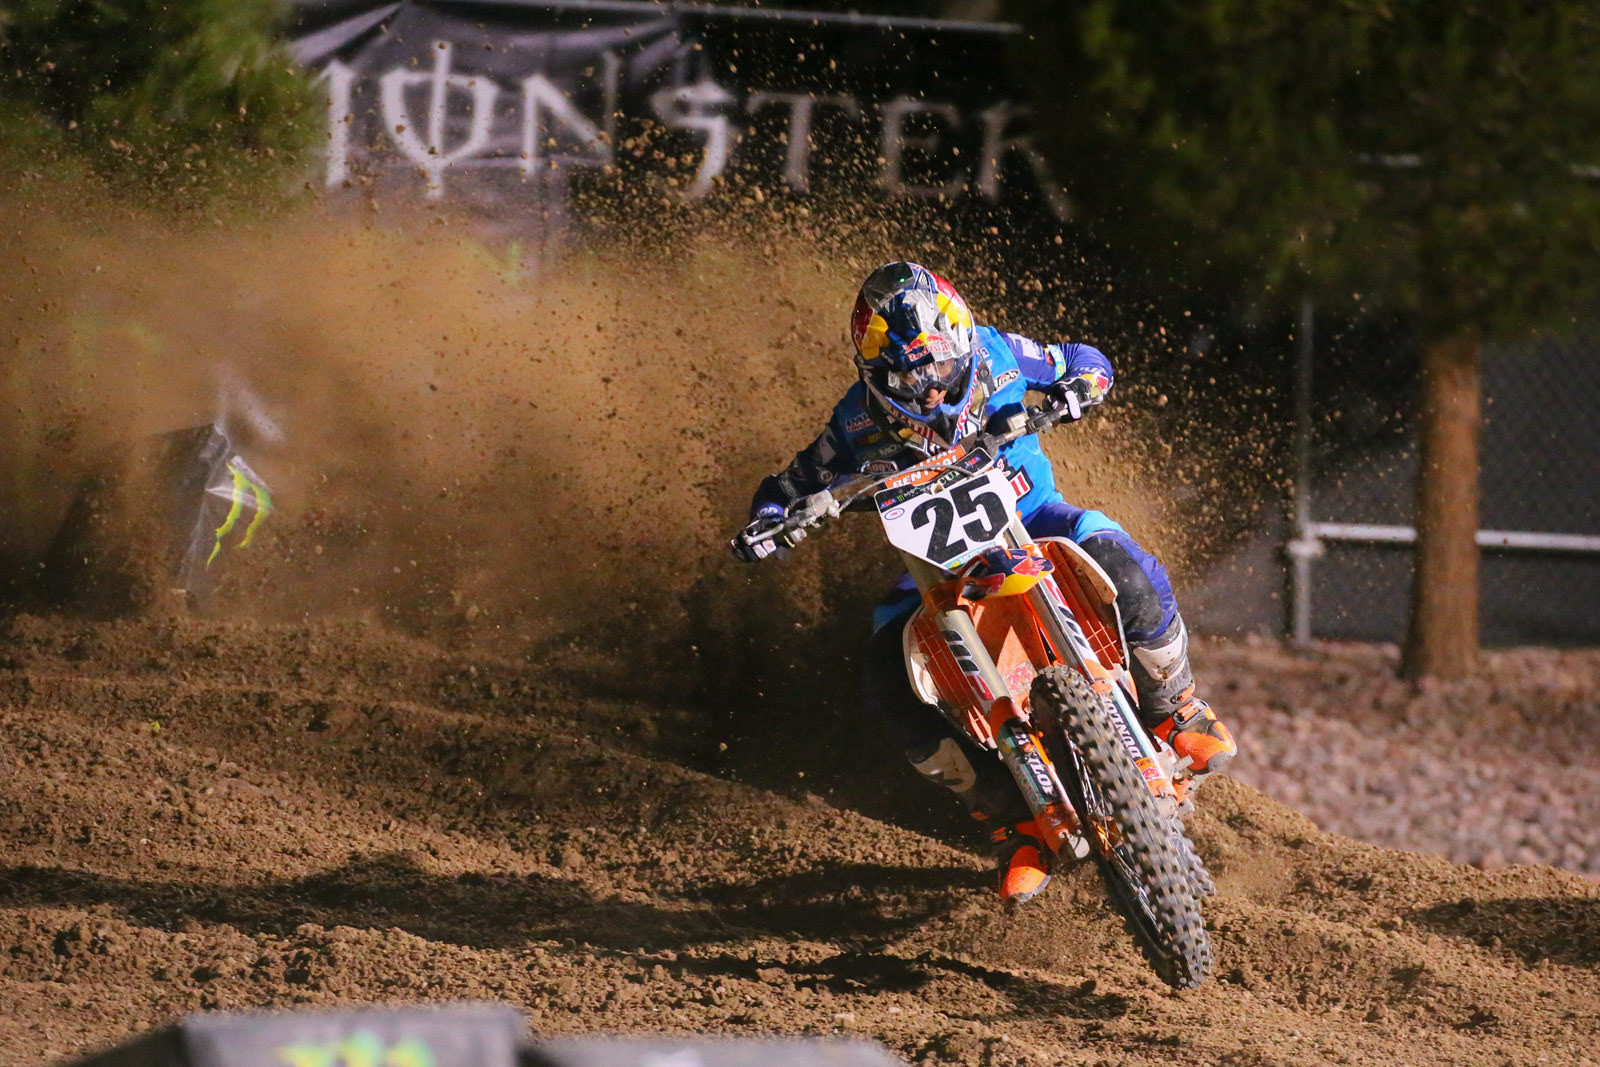 2017 Monster Energy Cup Provisional Entry Lists Released